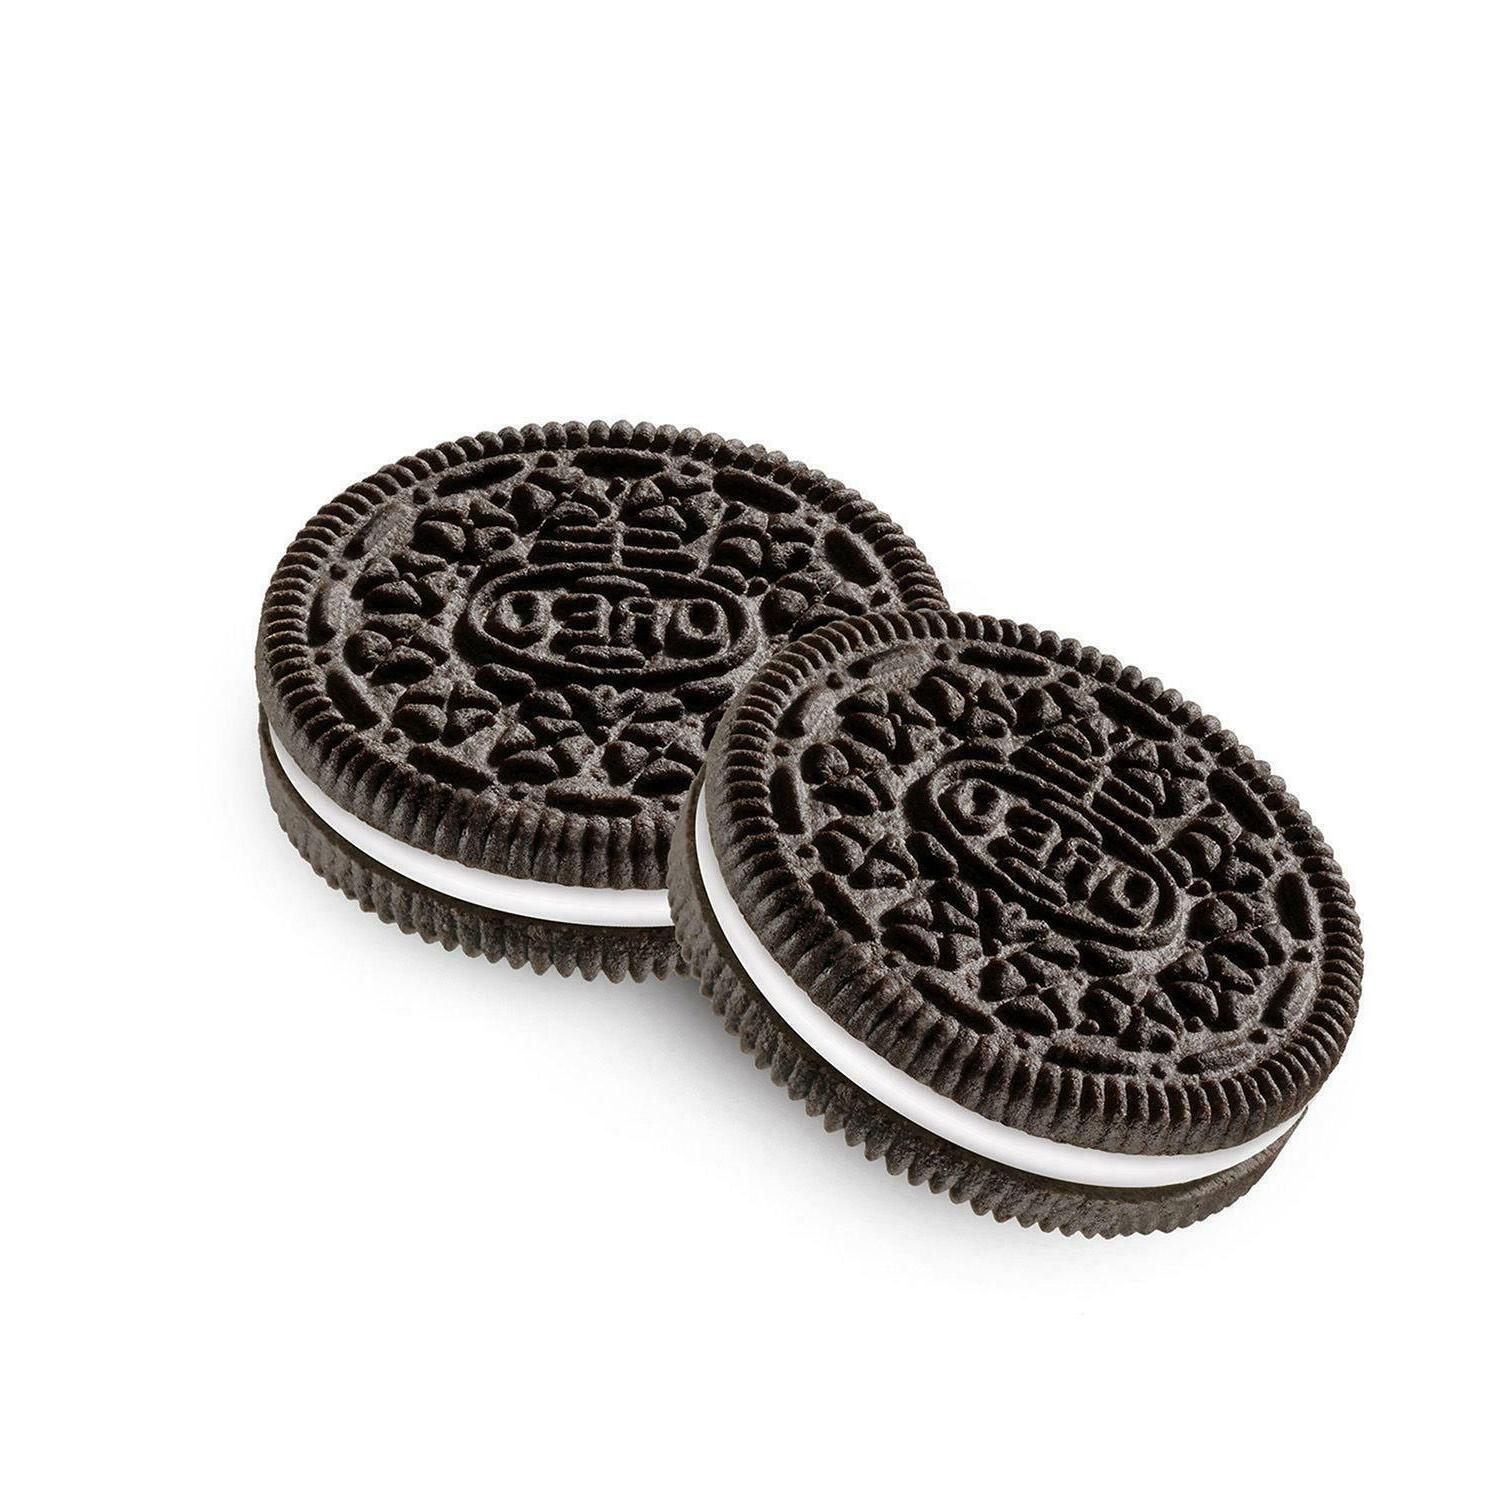 Nabisco Pack Fast Shipping